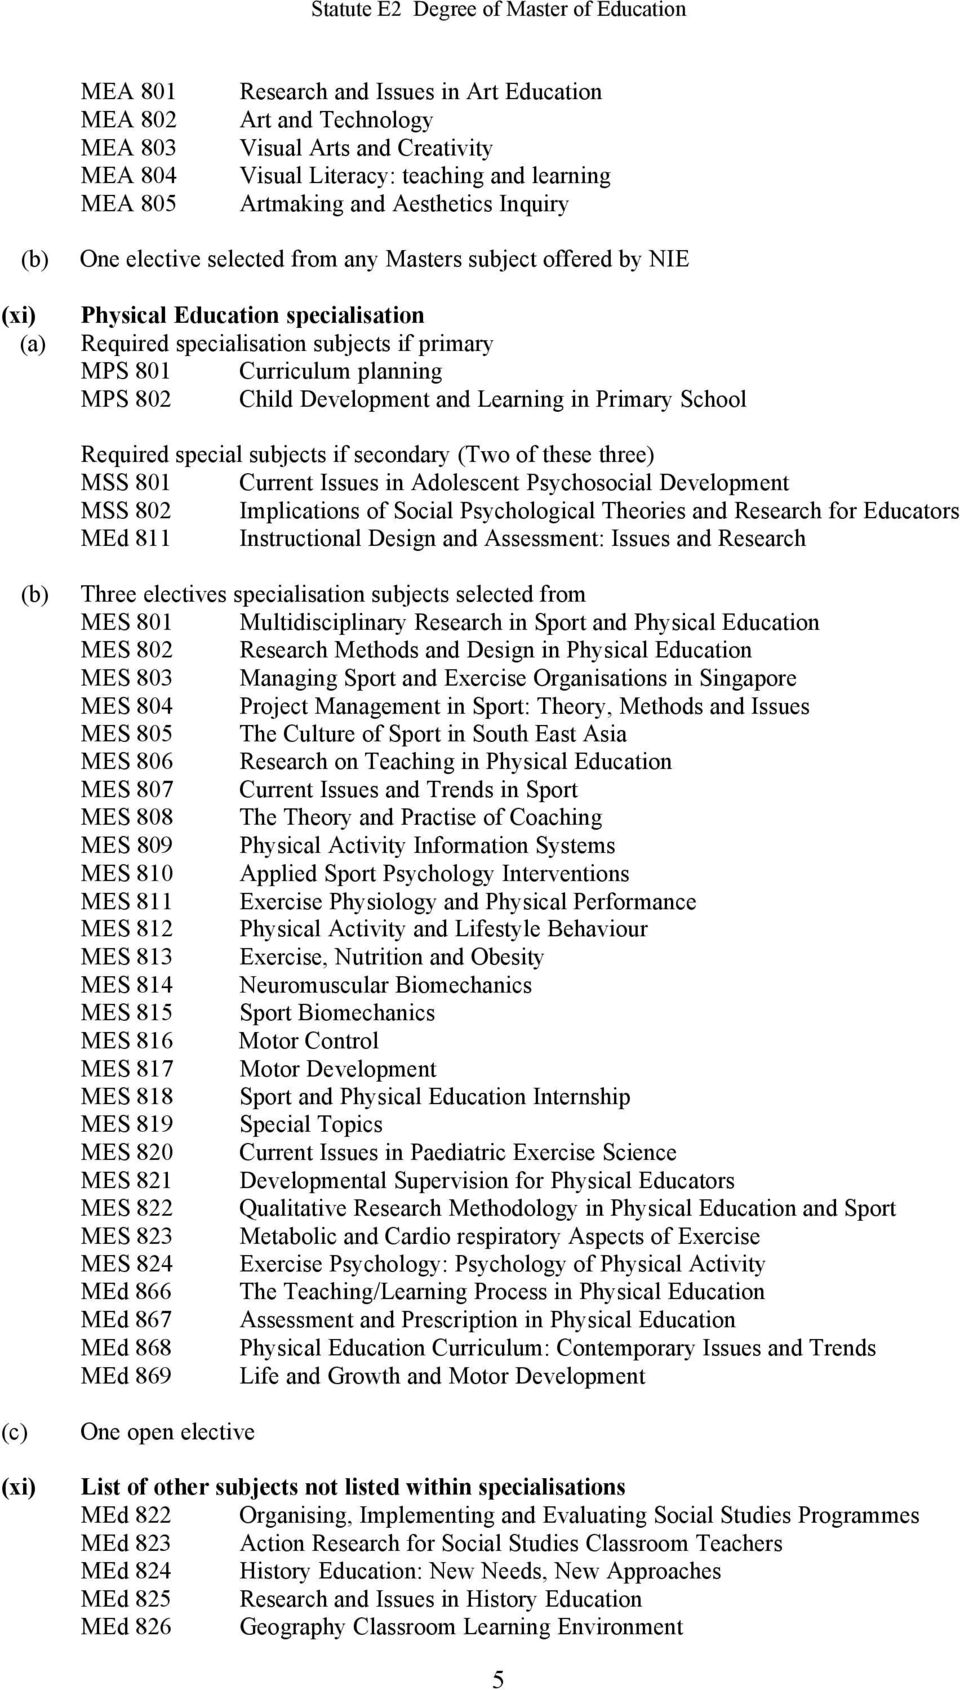 secondary (Two of these three) MSS 801 Current Issues in Adolescent Psychosocial Development MSS 802 Implications of Social Psychological Theories and Research for Educators MEd 811 Instructional